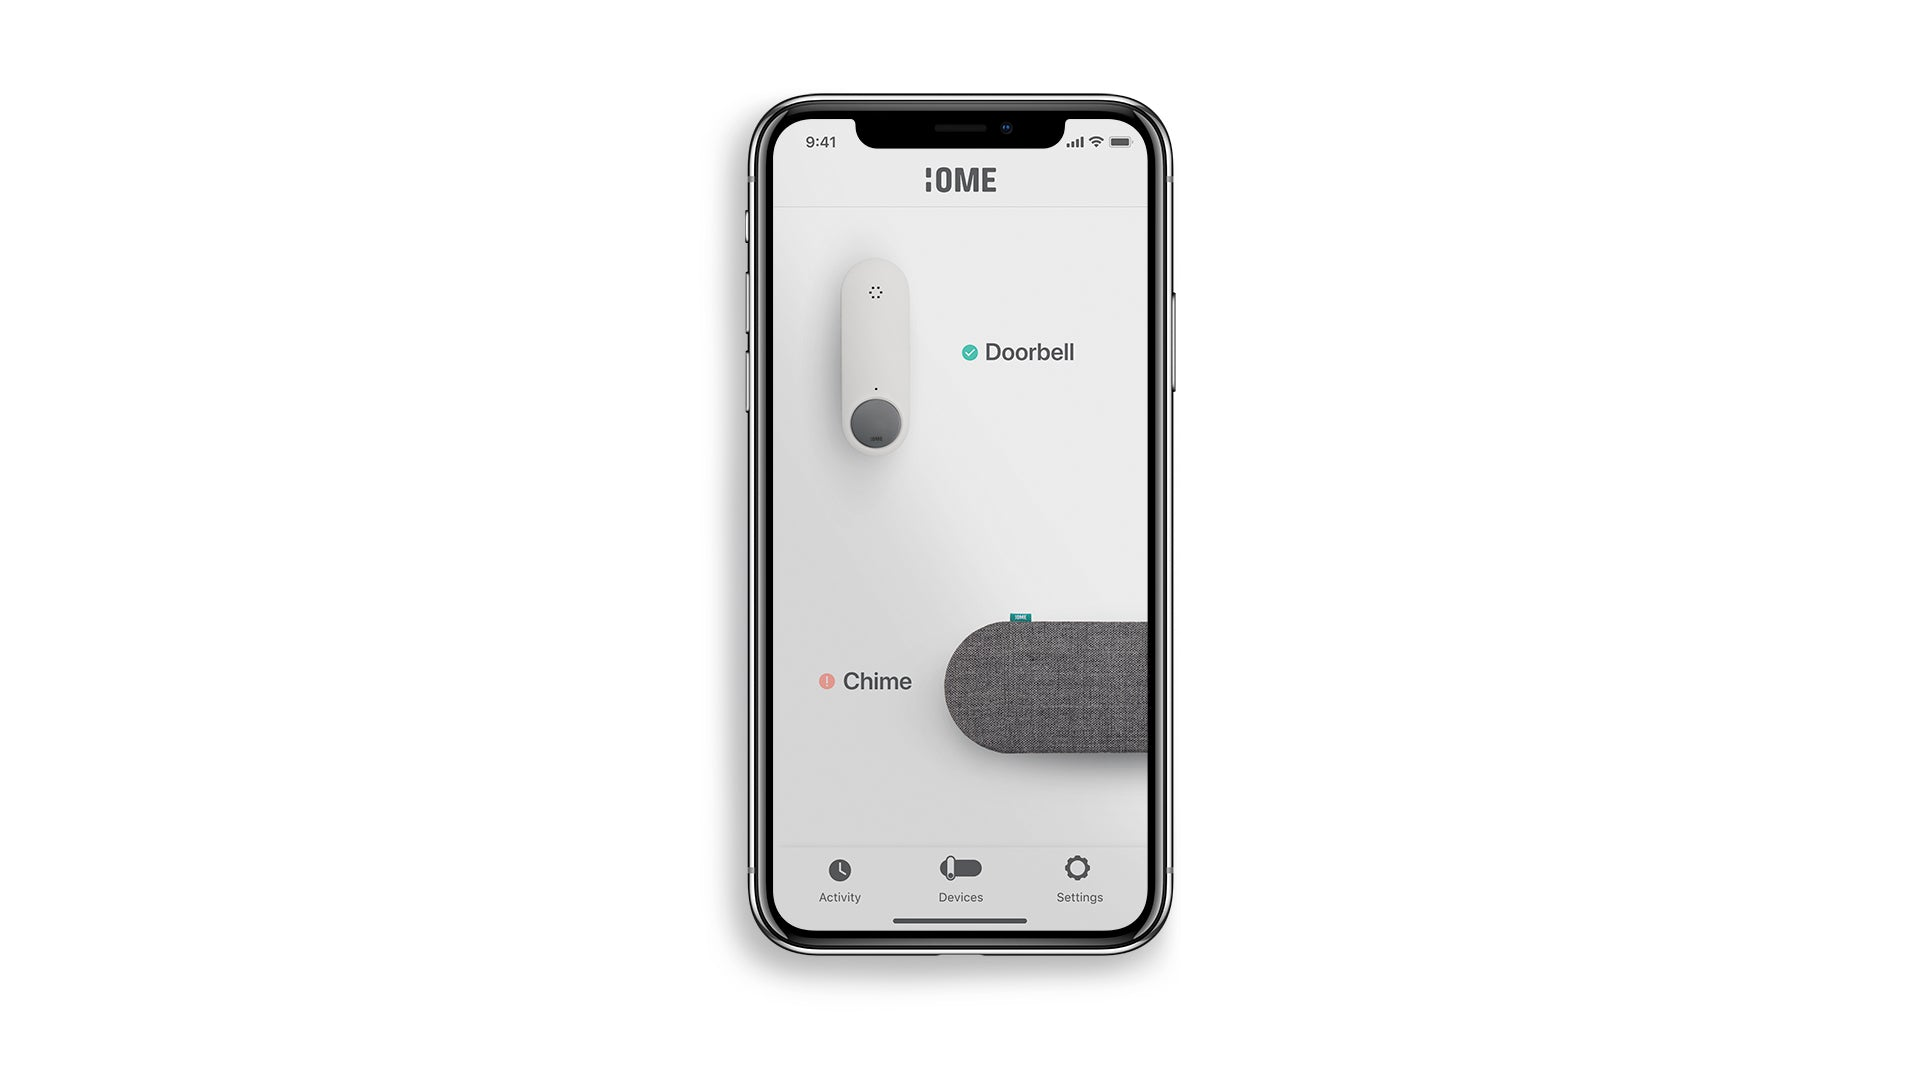 Ome Smart Doorbell App Home Page - View of Devices